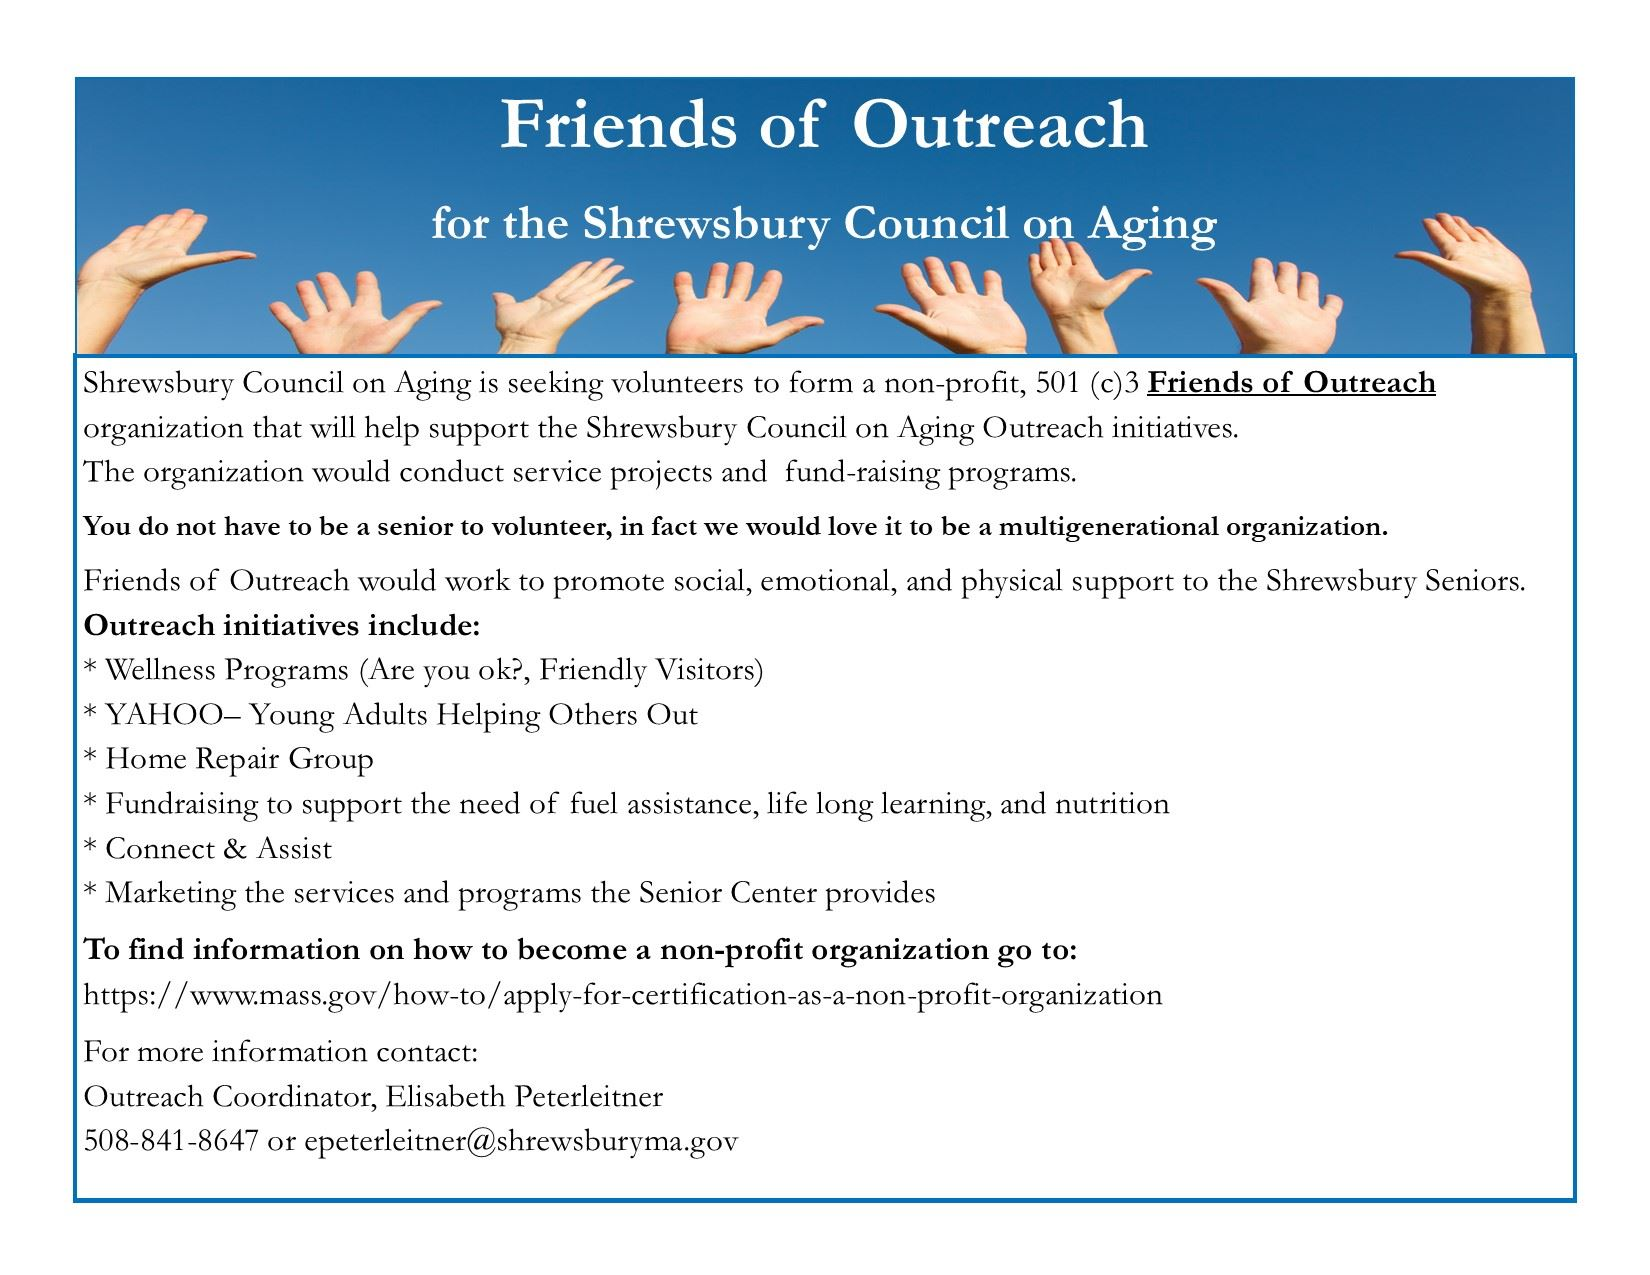 Friends of Outreach